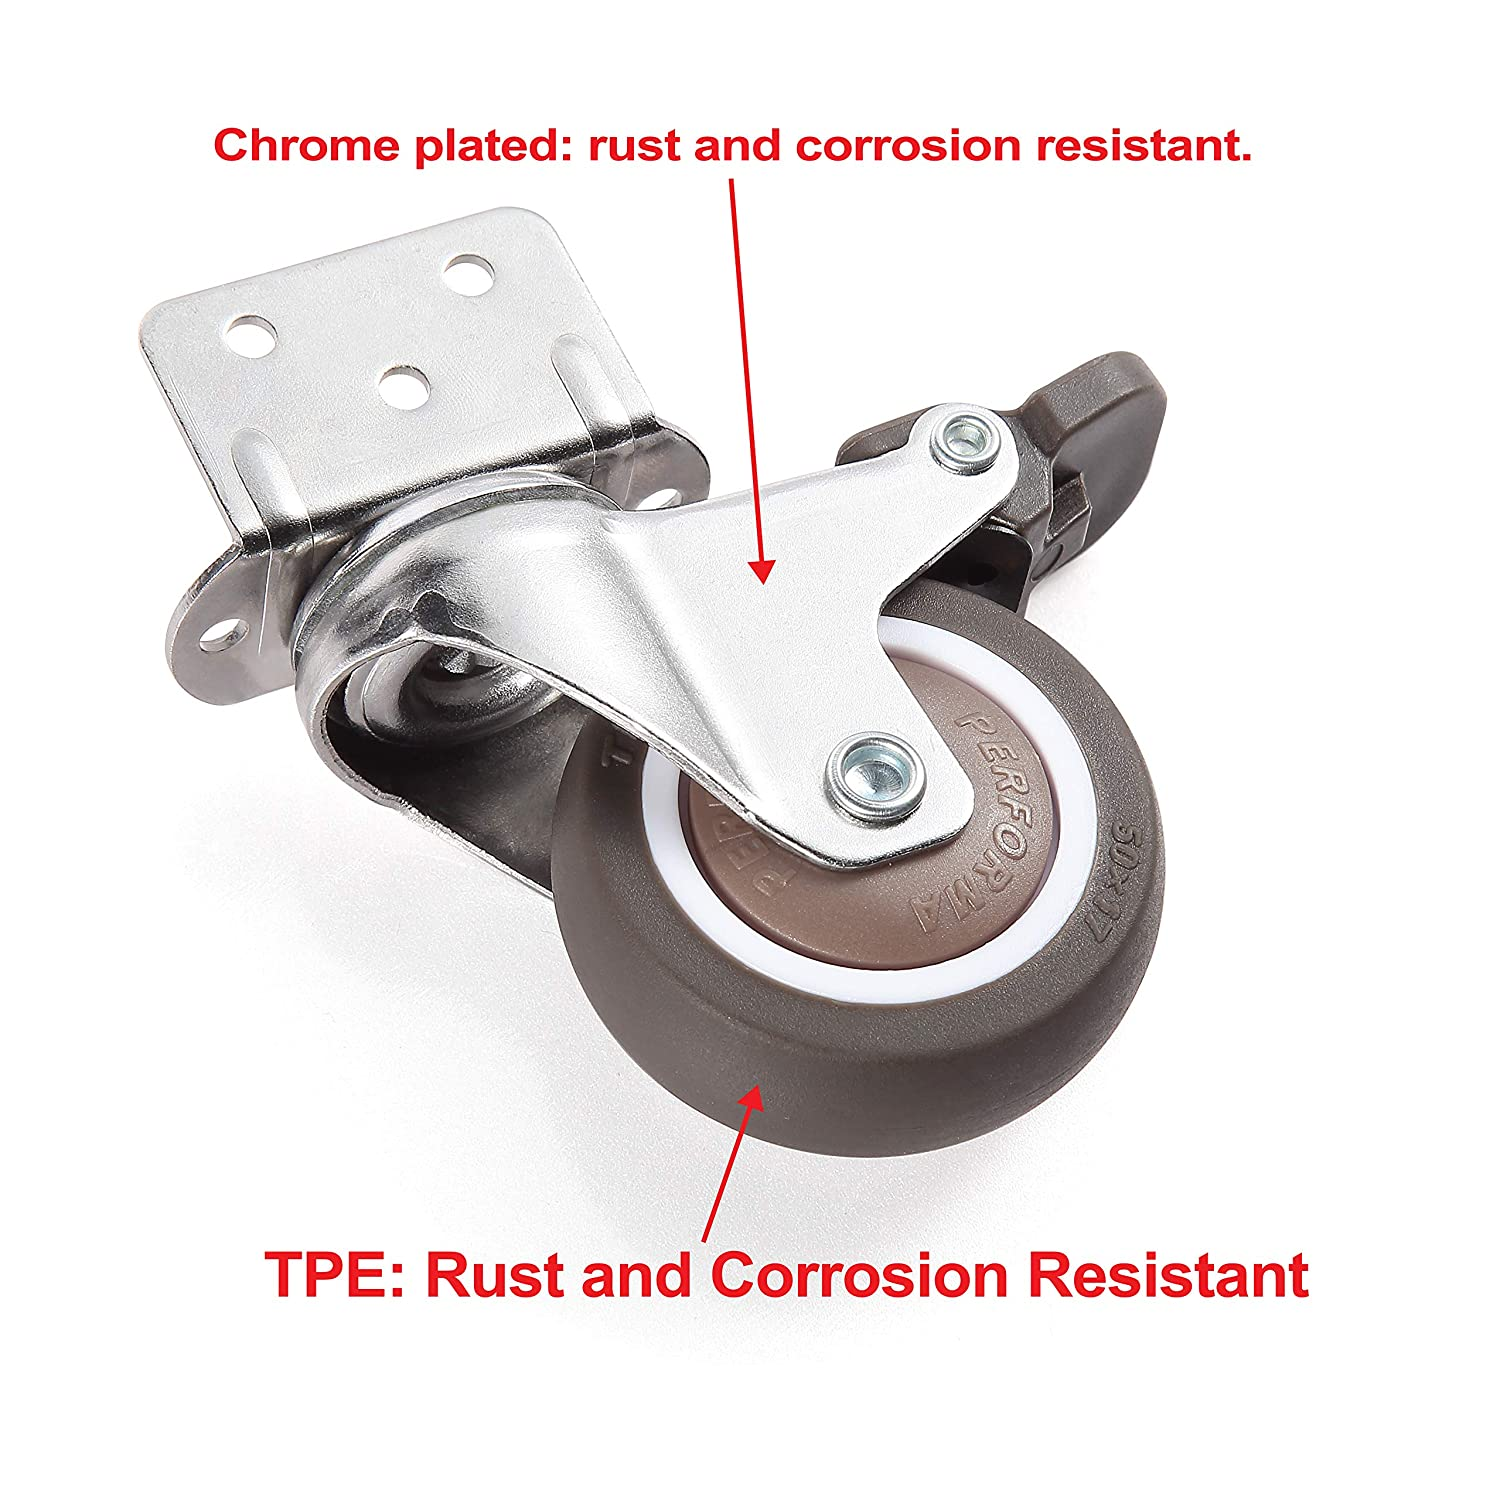 Skelang 4 Pcs 2 Inches Swivel Plate Casters with Brake Table L- Shaped Mute Wheels Replacement for Baby Bed Furniture TPE Caster Loading Capacity 240 Lbs Carts Trolley Kitchen Cabinet